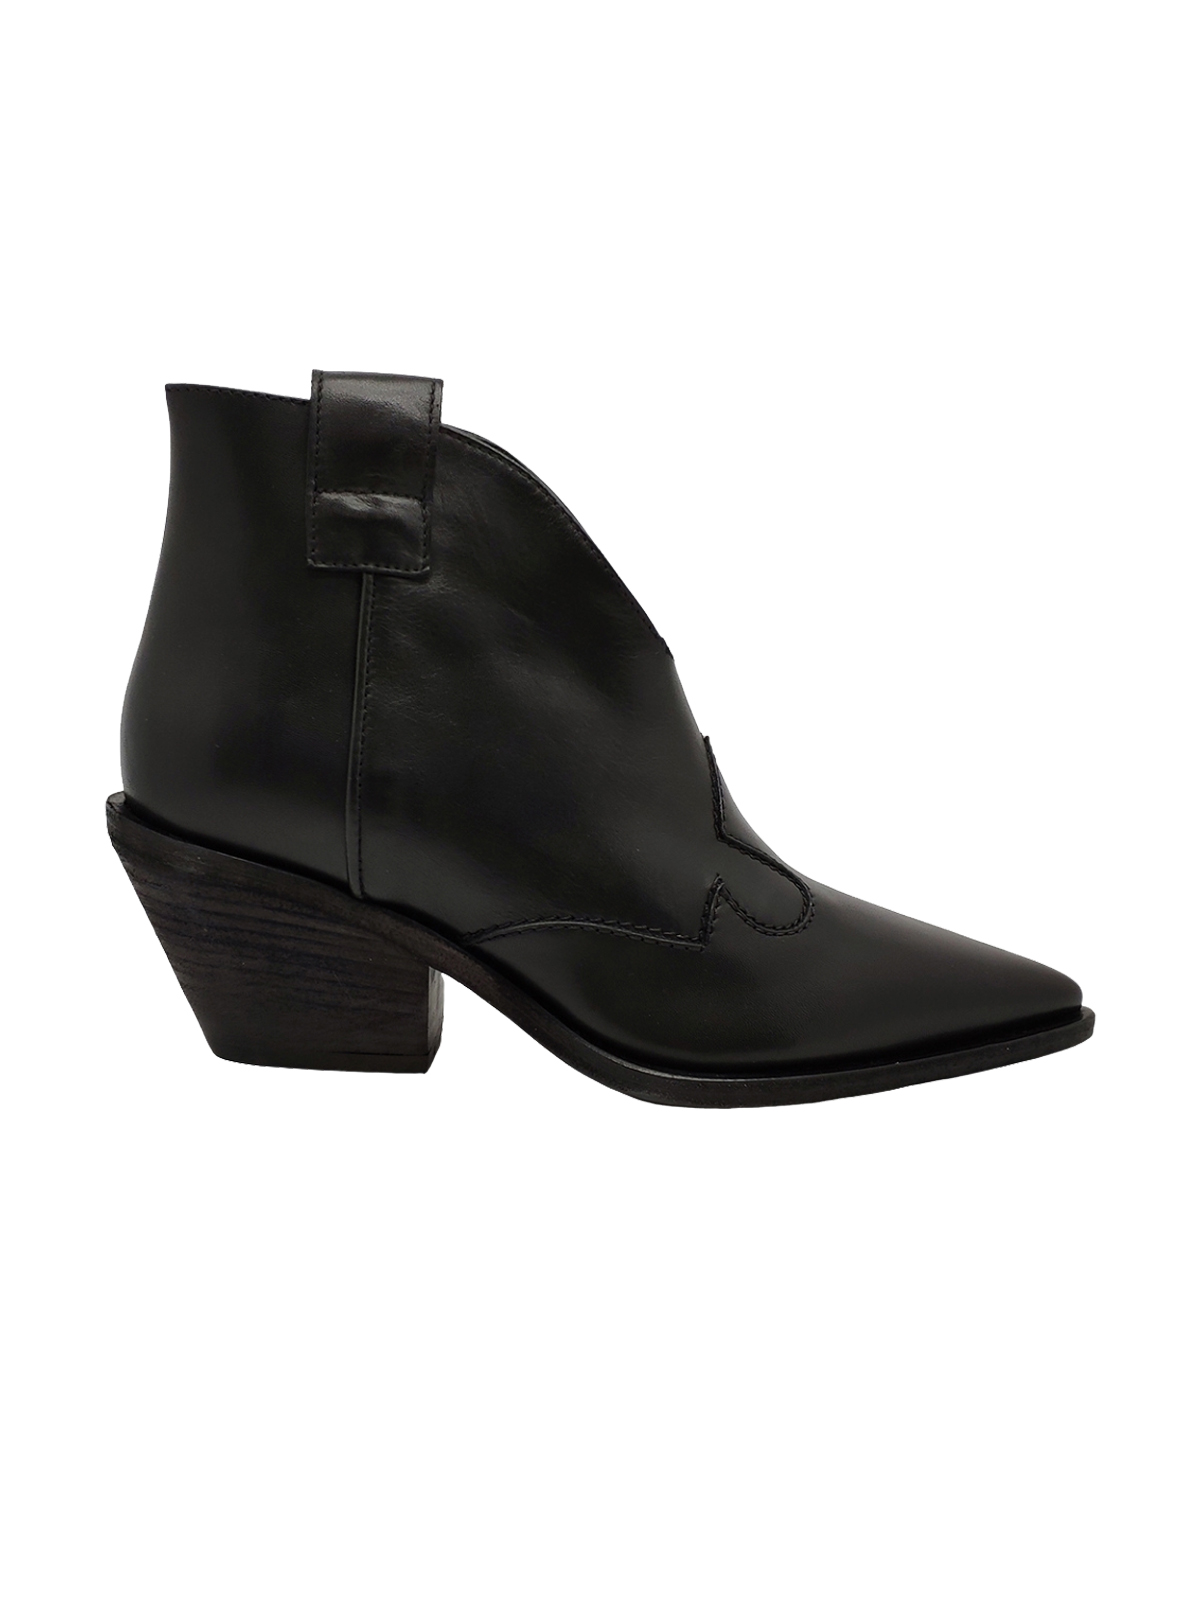 Women's Texan Ankle Boots Bervicato | Ankle Boots | EASYNERO